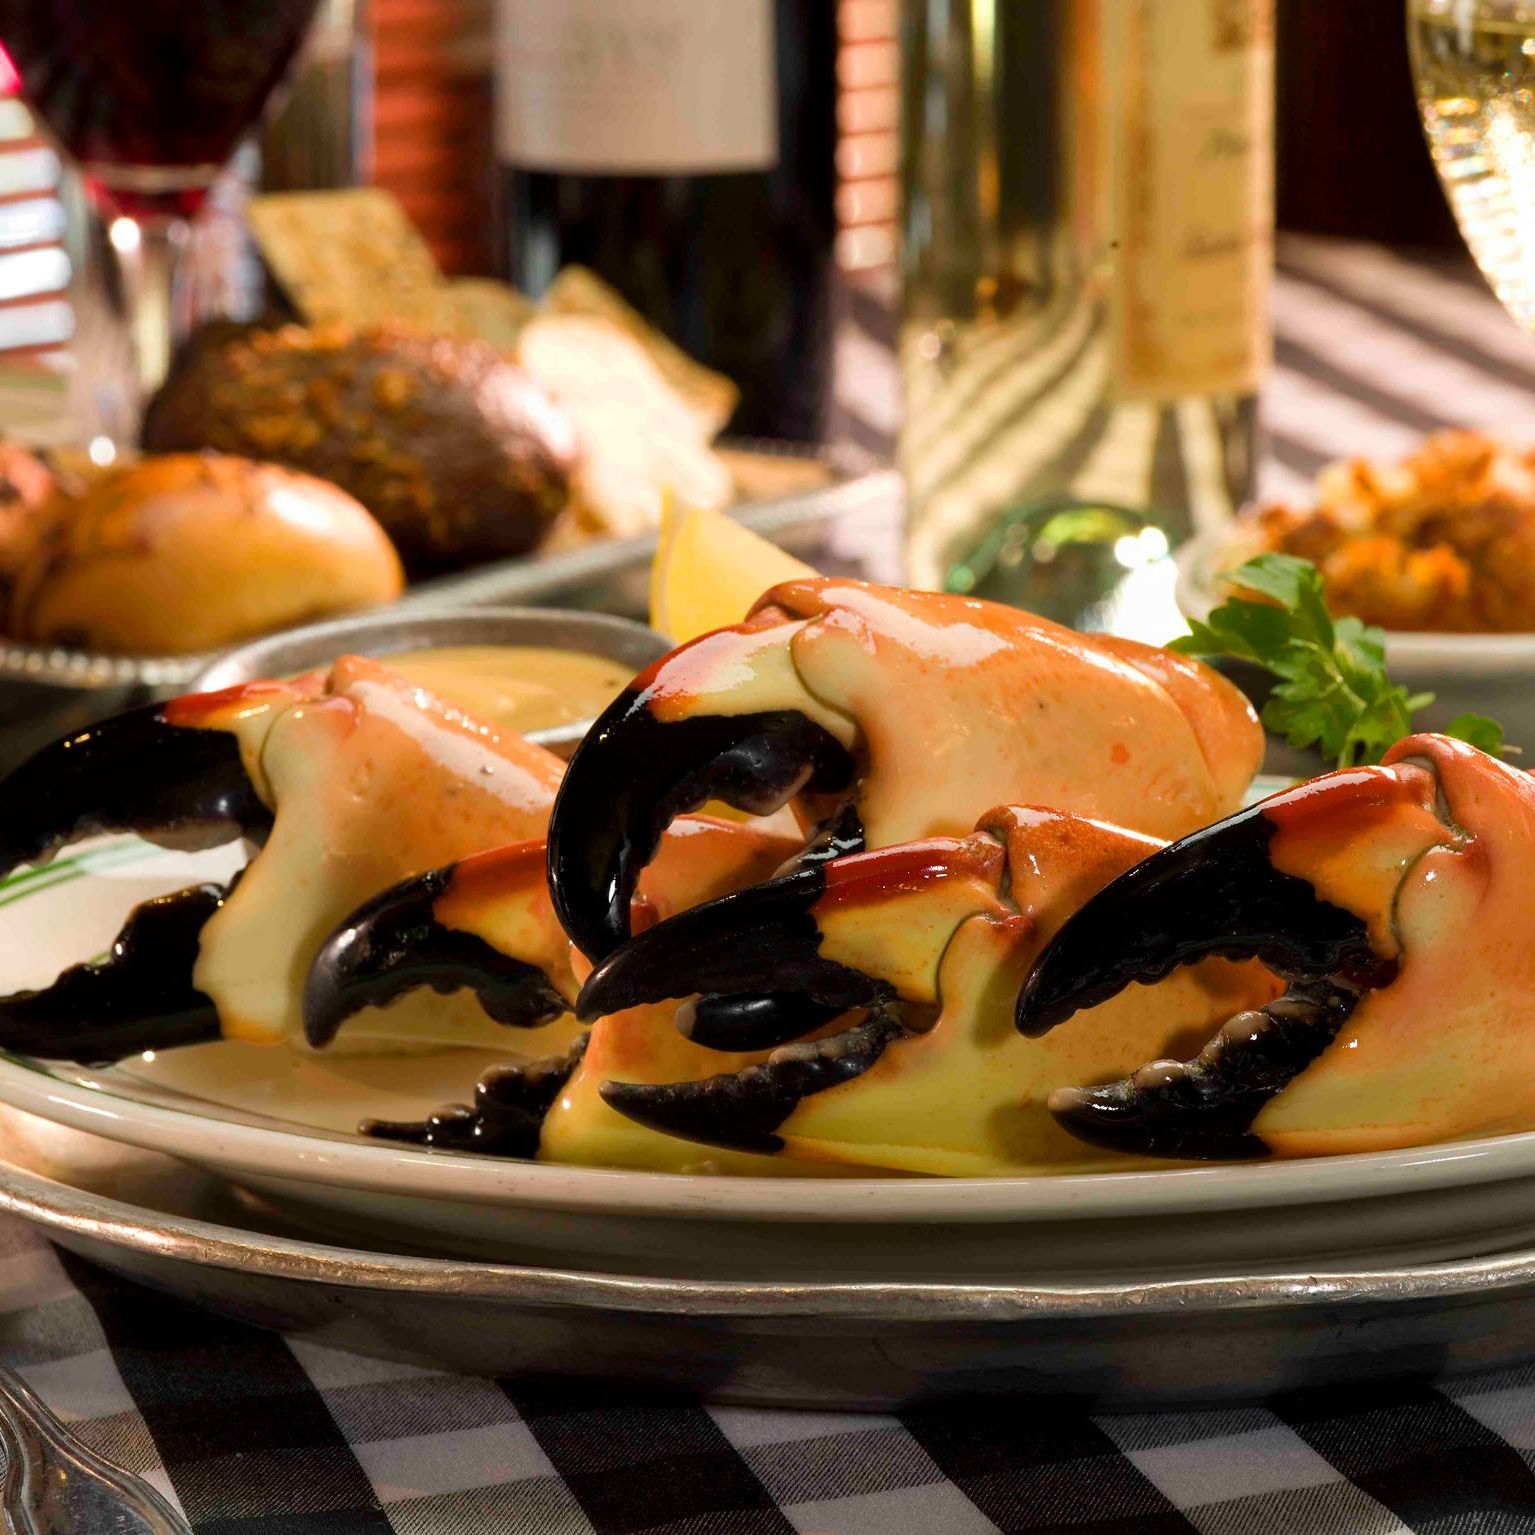 The Best 15 Places for Stone Crab in South Florida